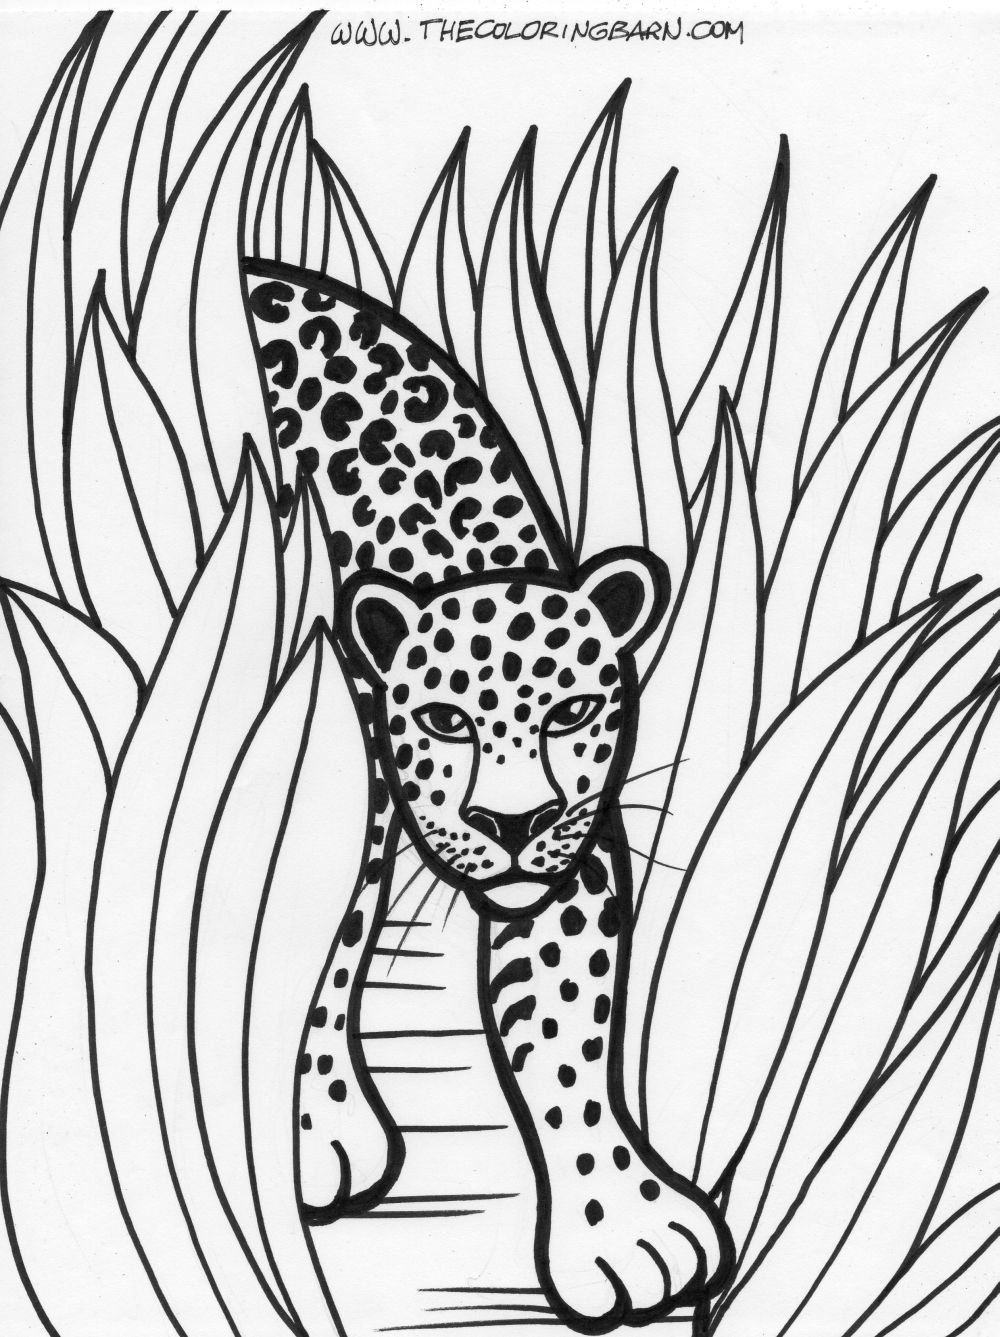 Rainforest Coloring Pages Printable Rainforest Trees Coloring ...